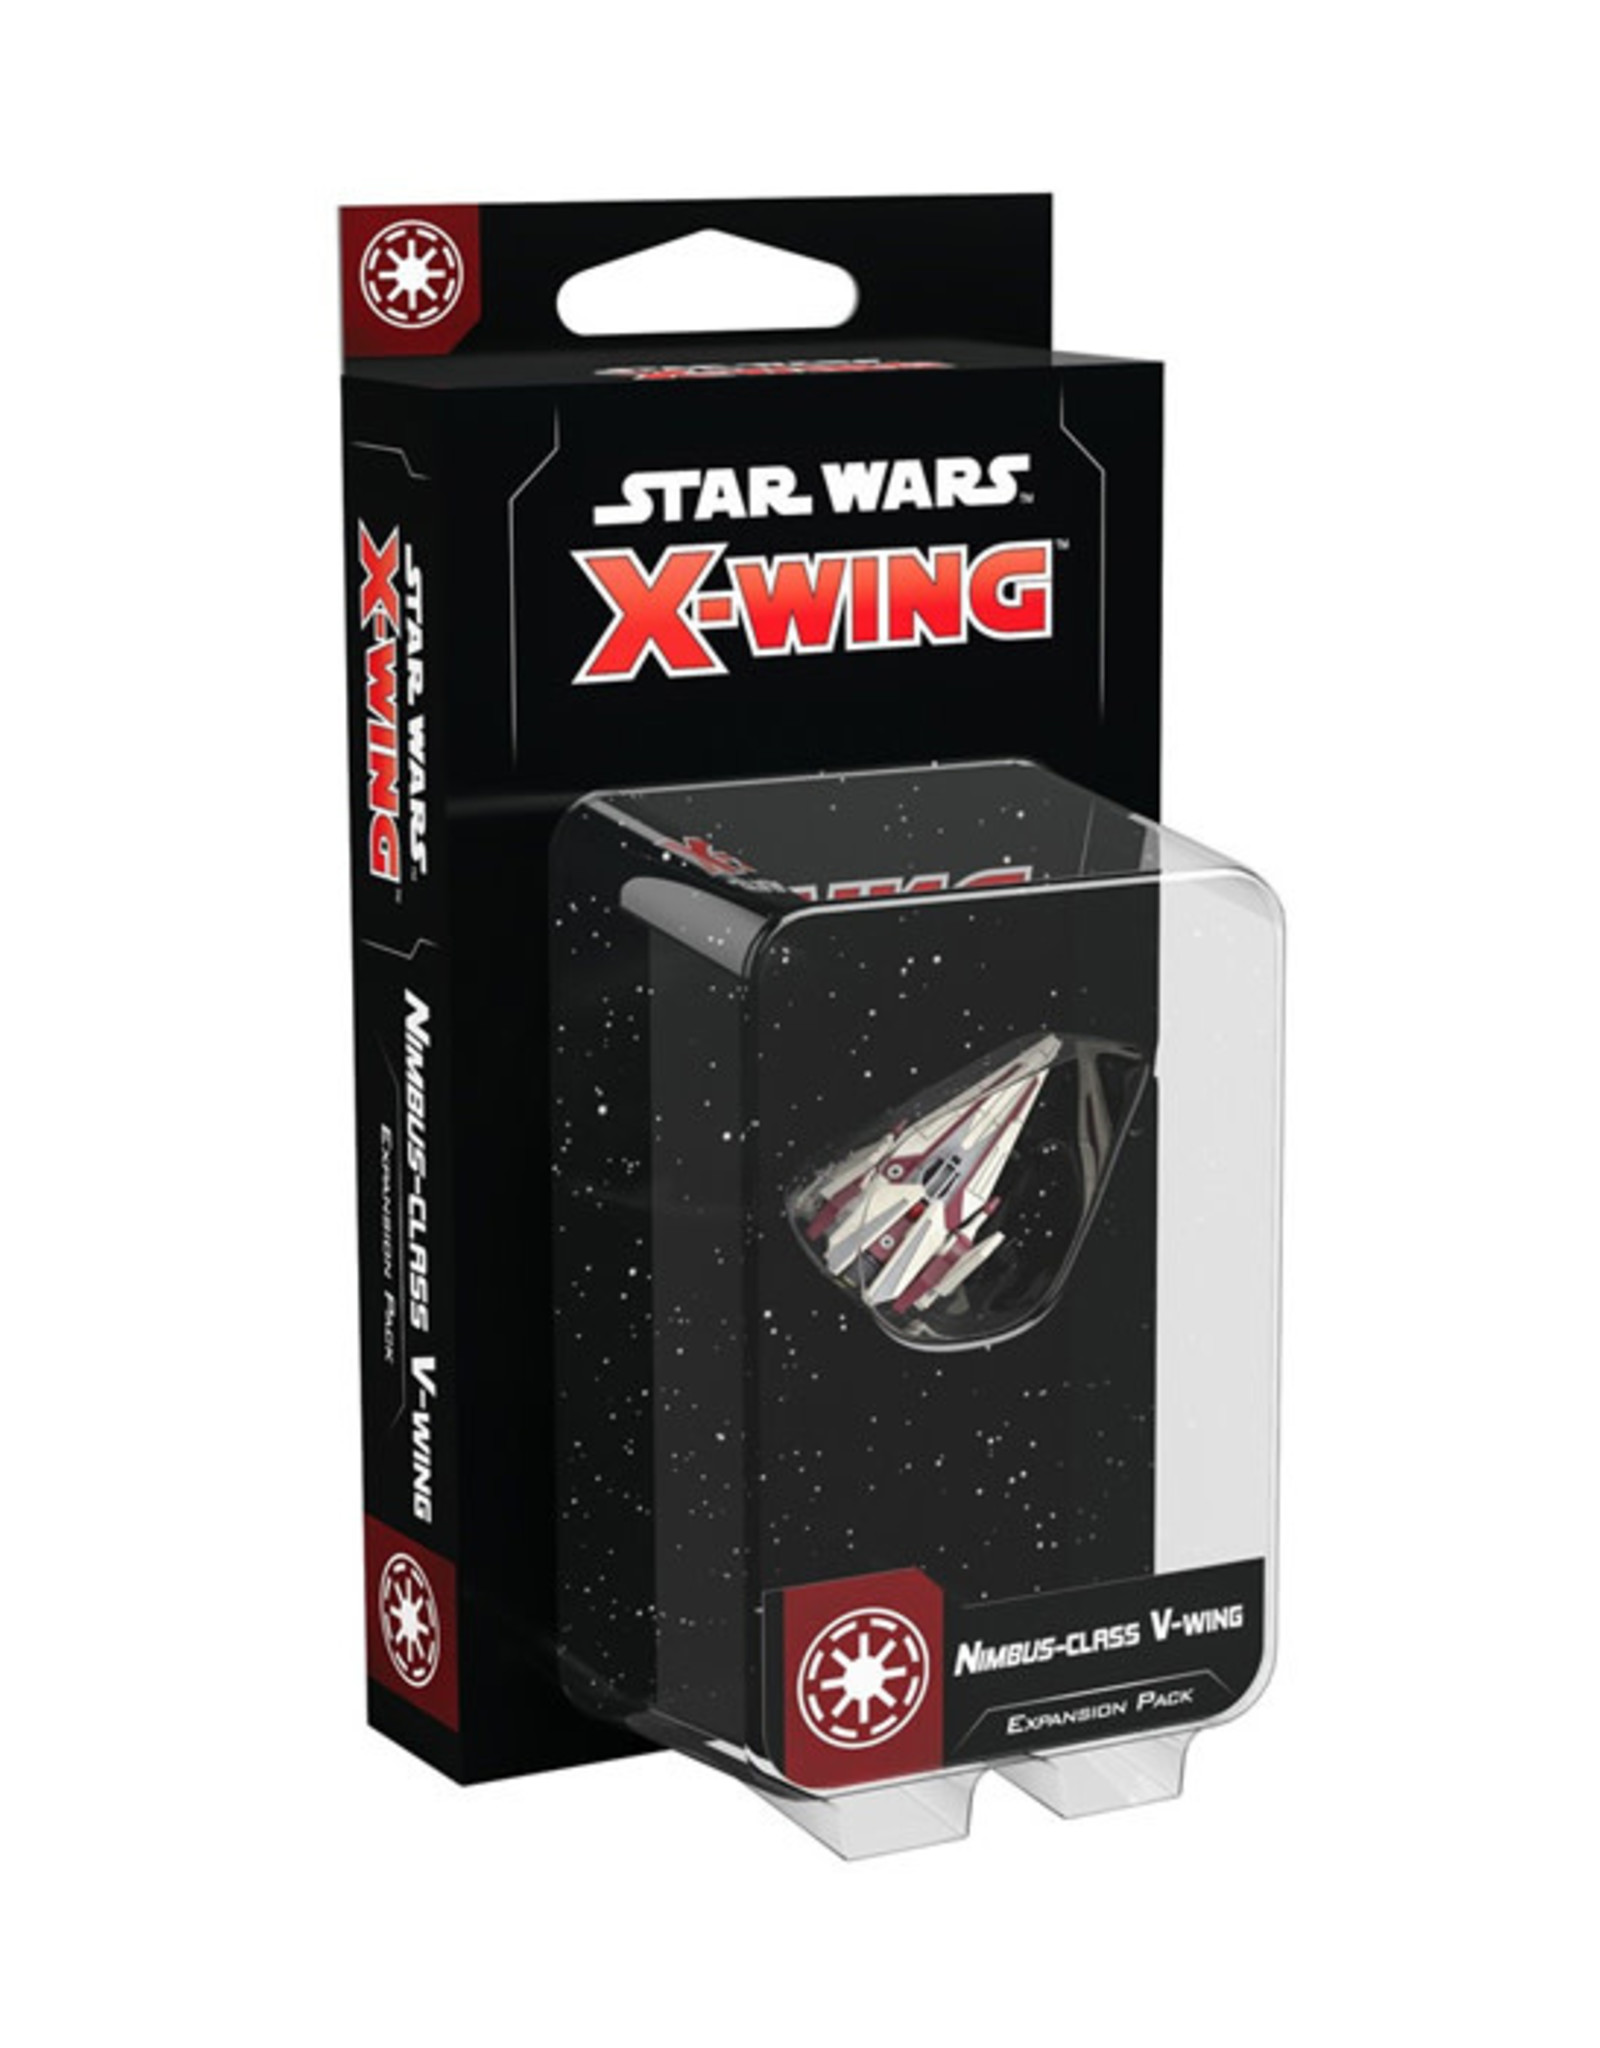 Fantasy Flight Games Star Wars: X-Wing - 2nd Edition - Nimbus-class V-wing